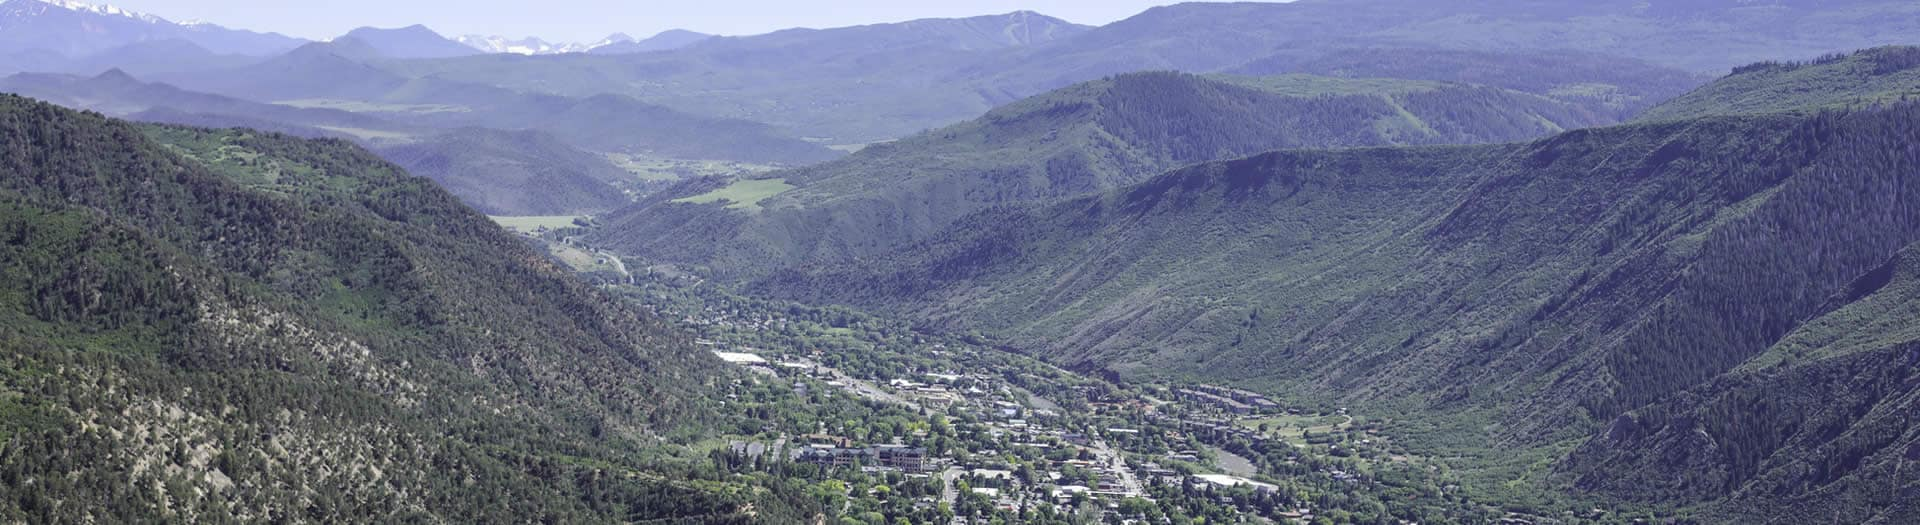 Glenwood Springs, CO | The Property Shop, Inc.